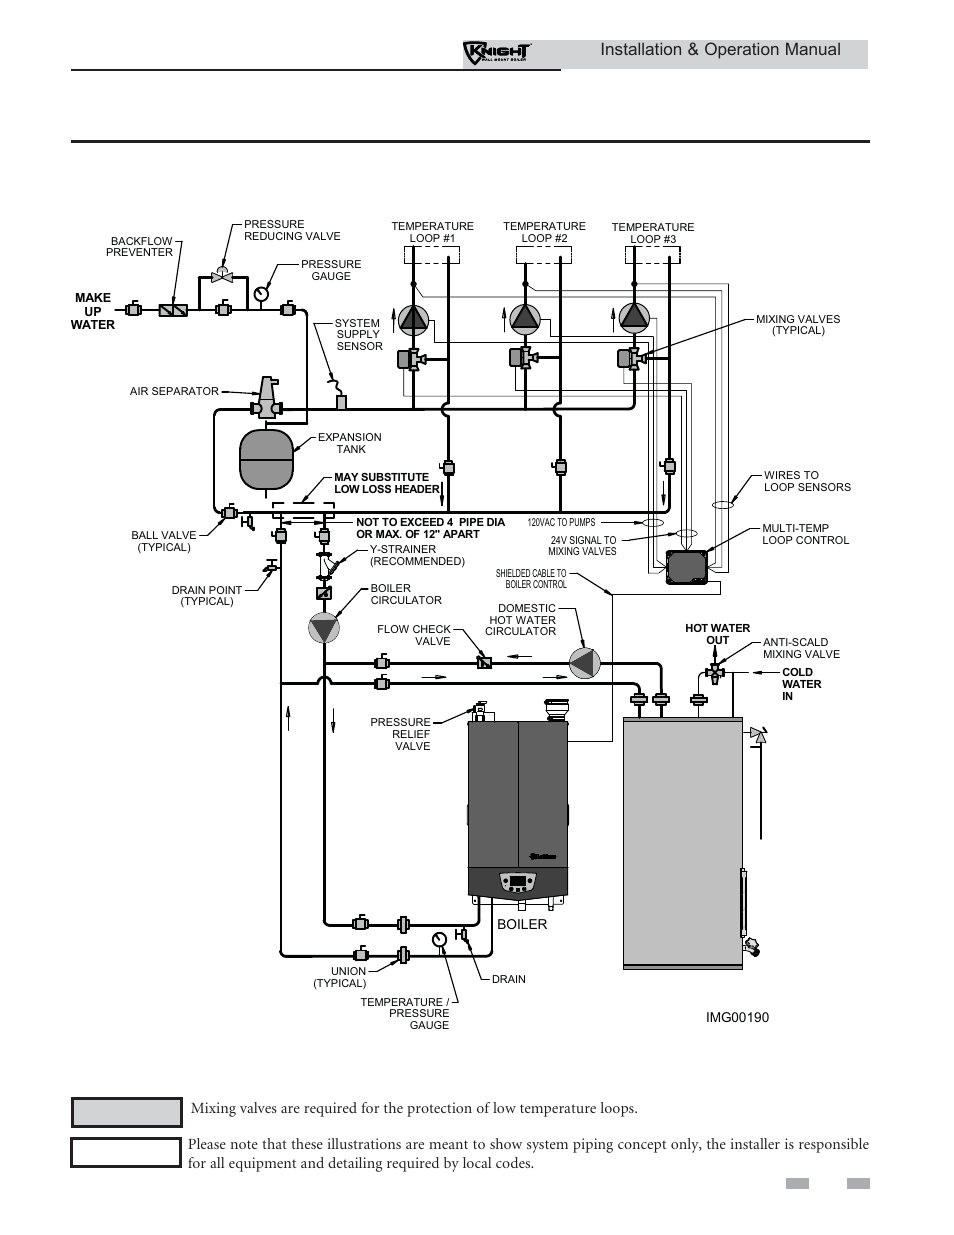 Lochinvar Piping Diagrams Wiring Data Base Diagram Tankless Water Heater Com On Peerless For Hydronic Installation Operation Manual Wall Mount Boiler Wh 55 399 At Hot